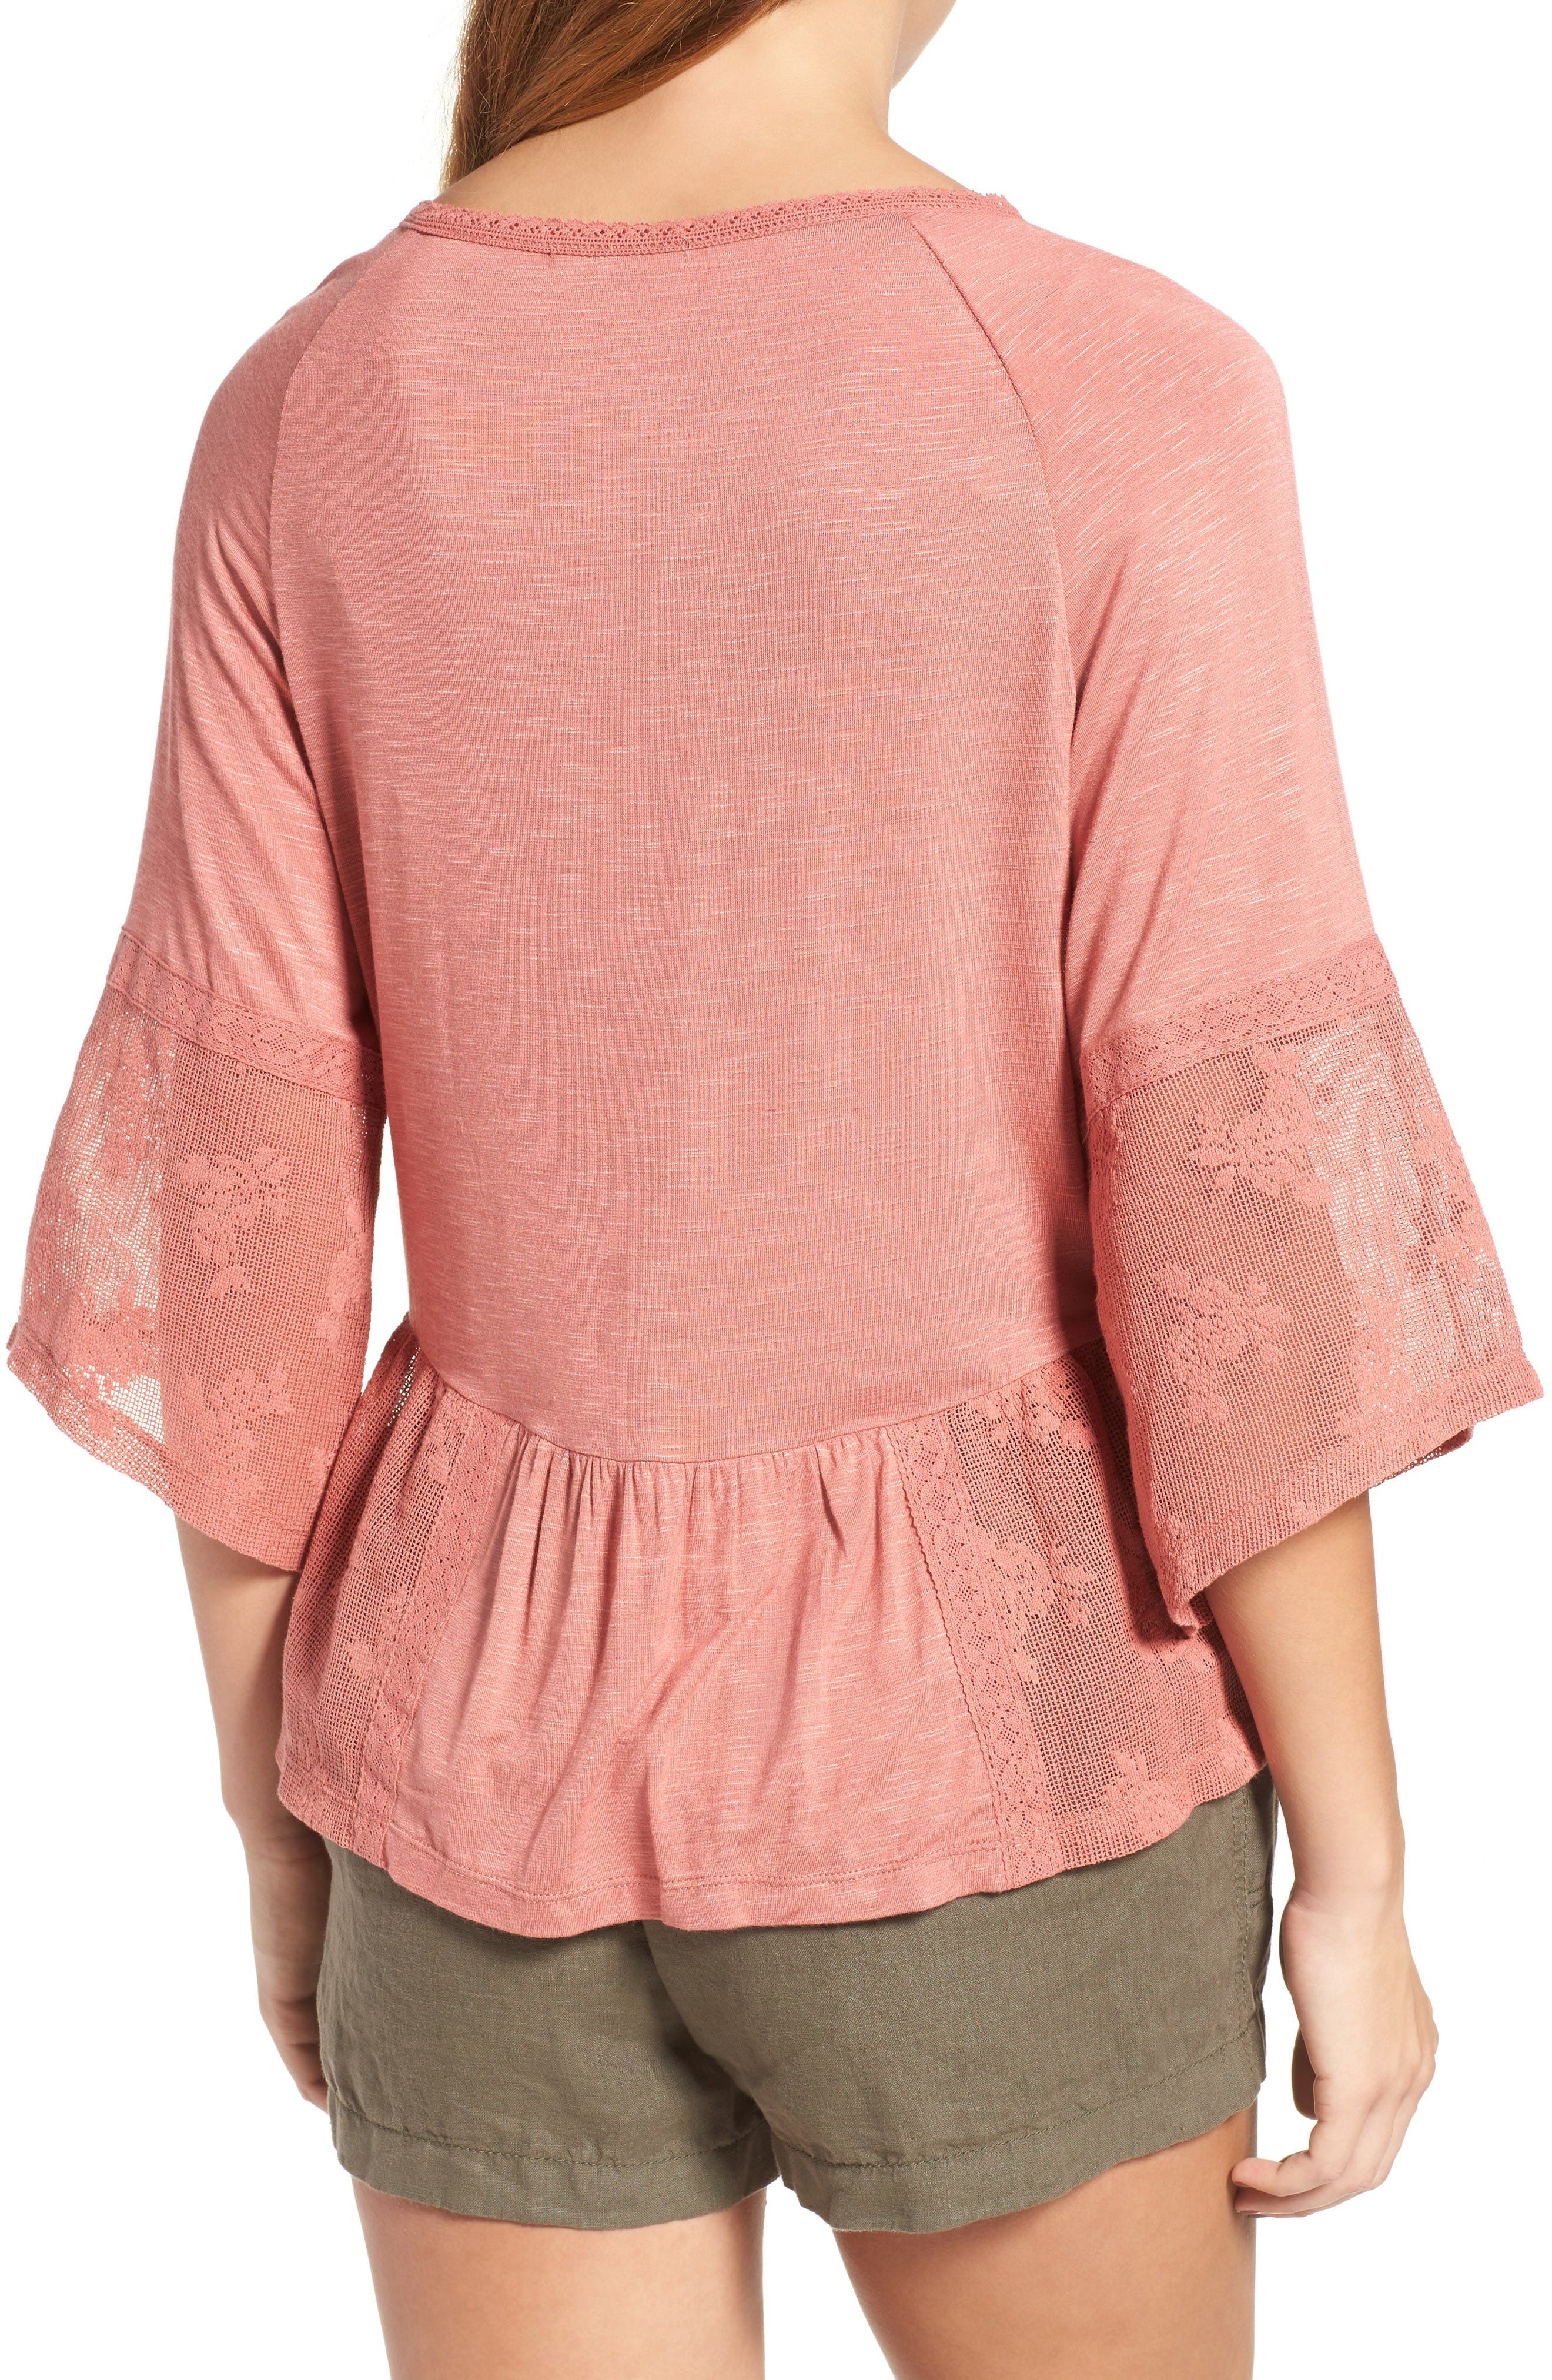 Alternate Image 2  - Wit & Wisdom Mixed Media Flounce Top (Nordstrom Exclusive)